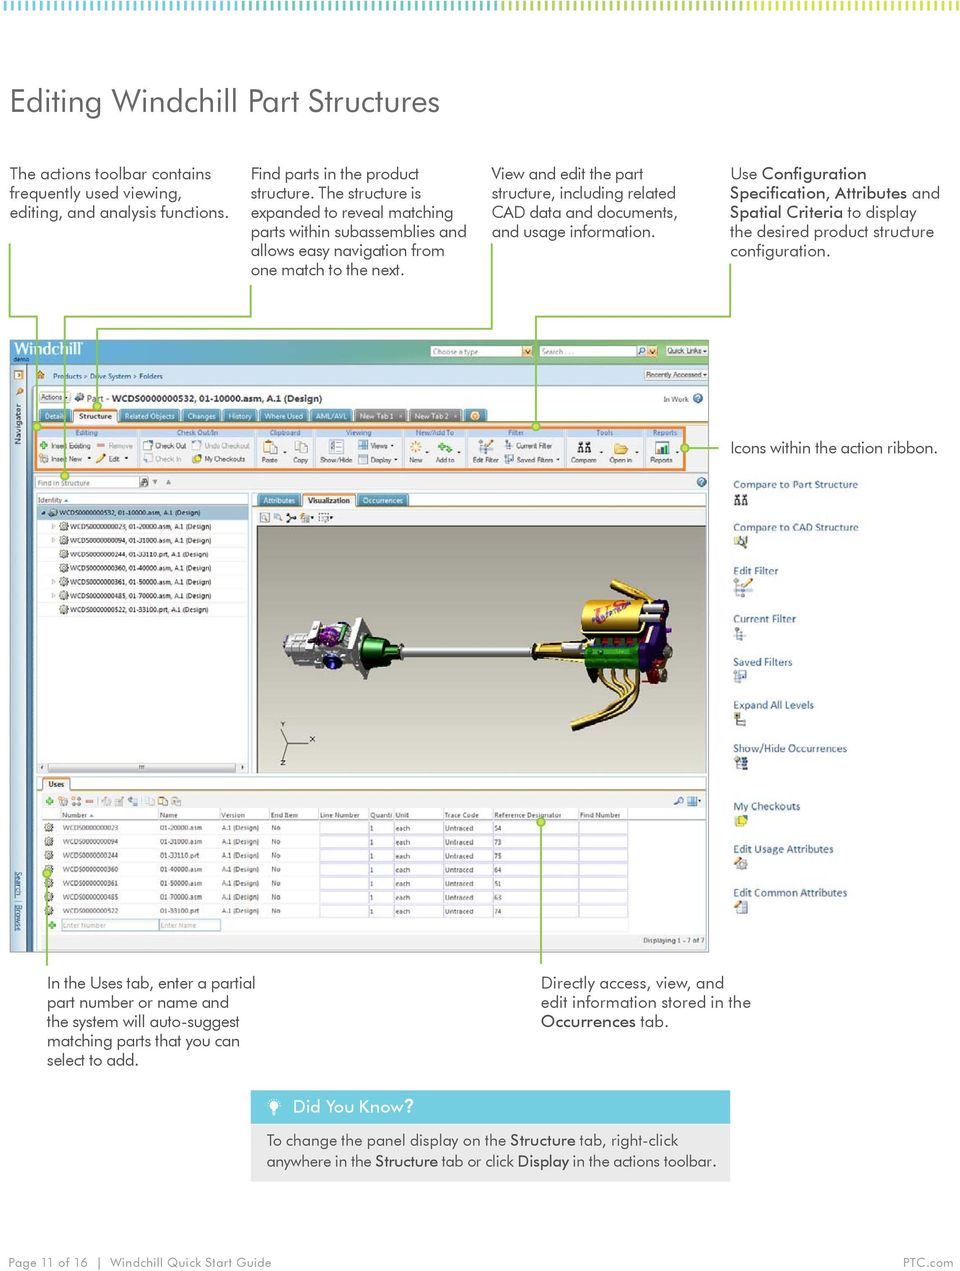 View and edit the part structure, including related CAD data and documents, and usage information.